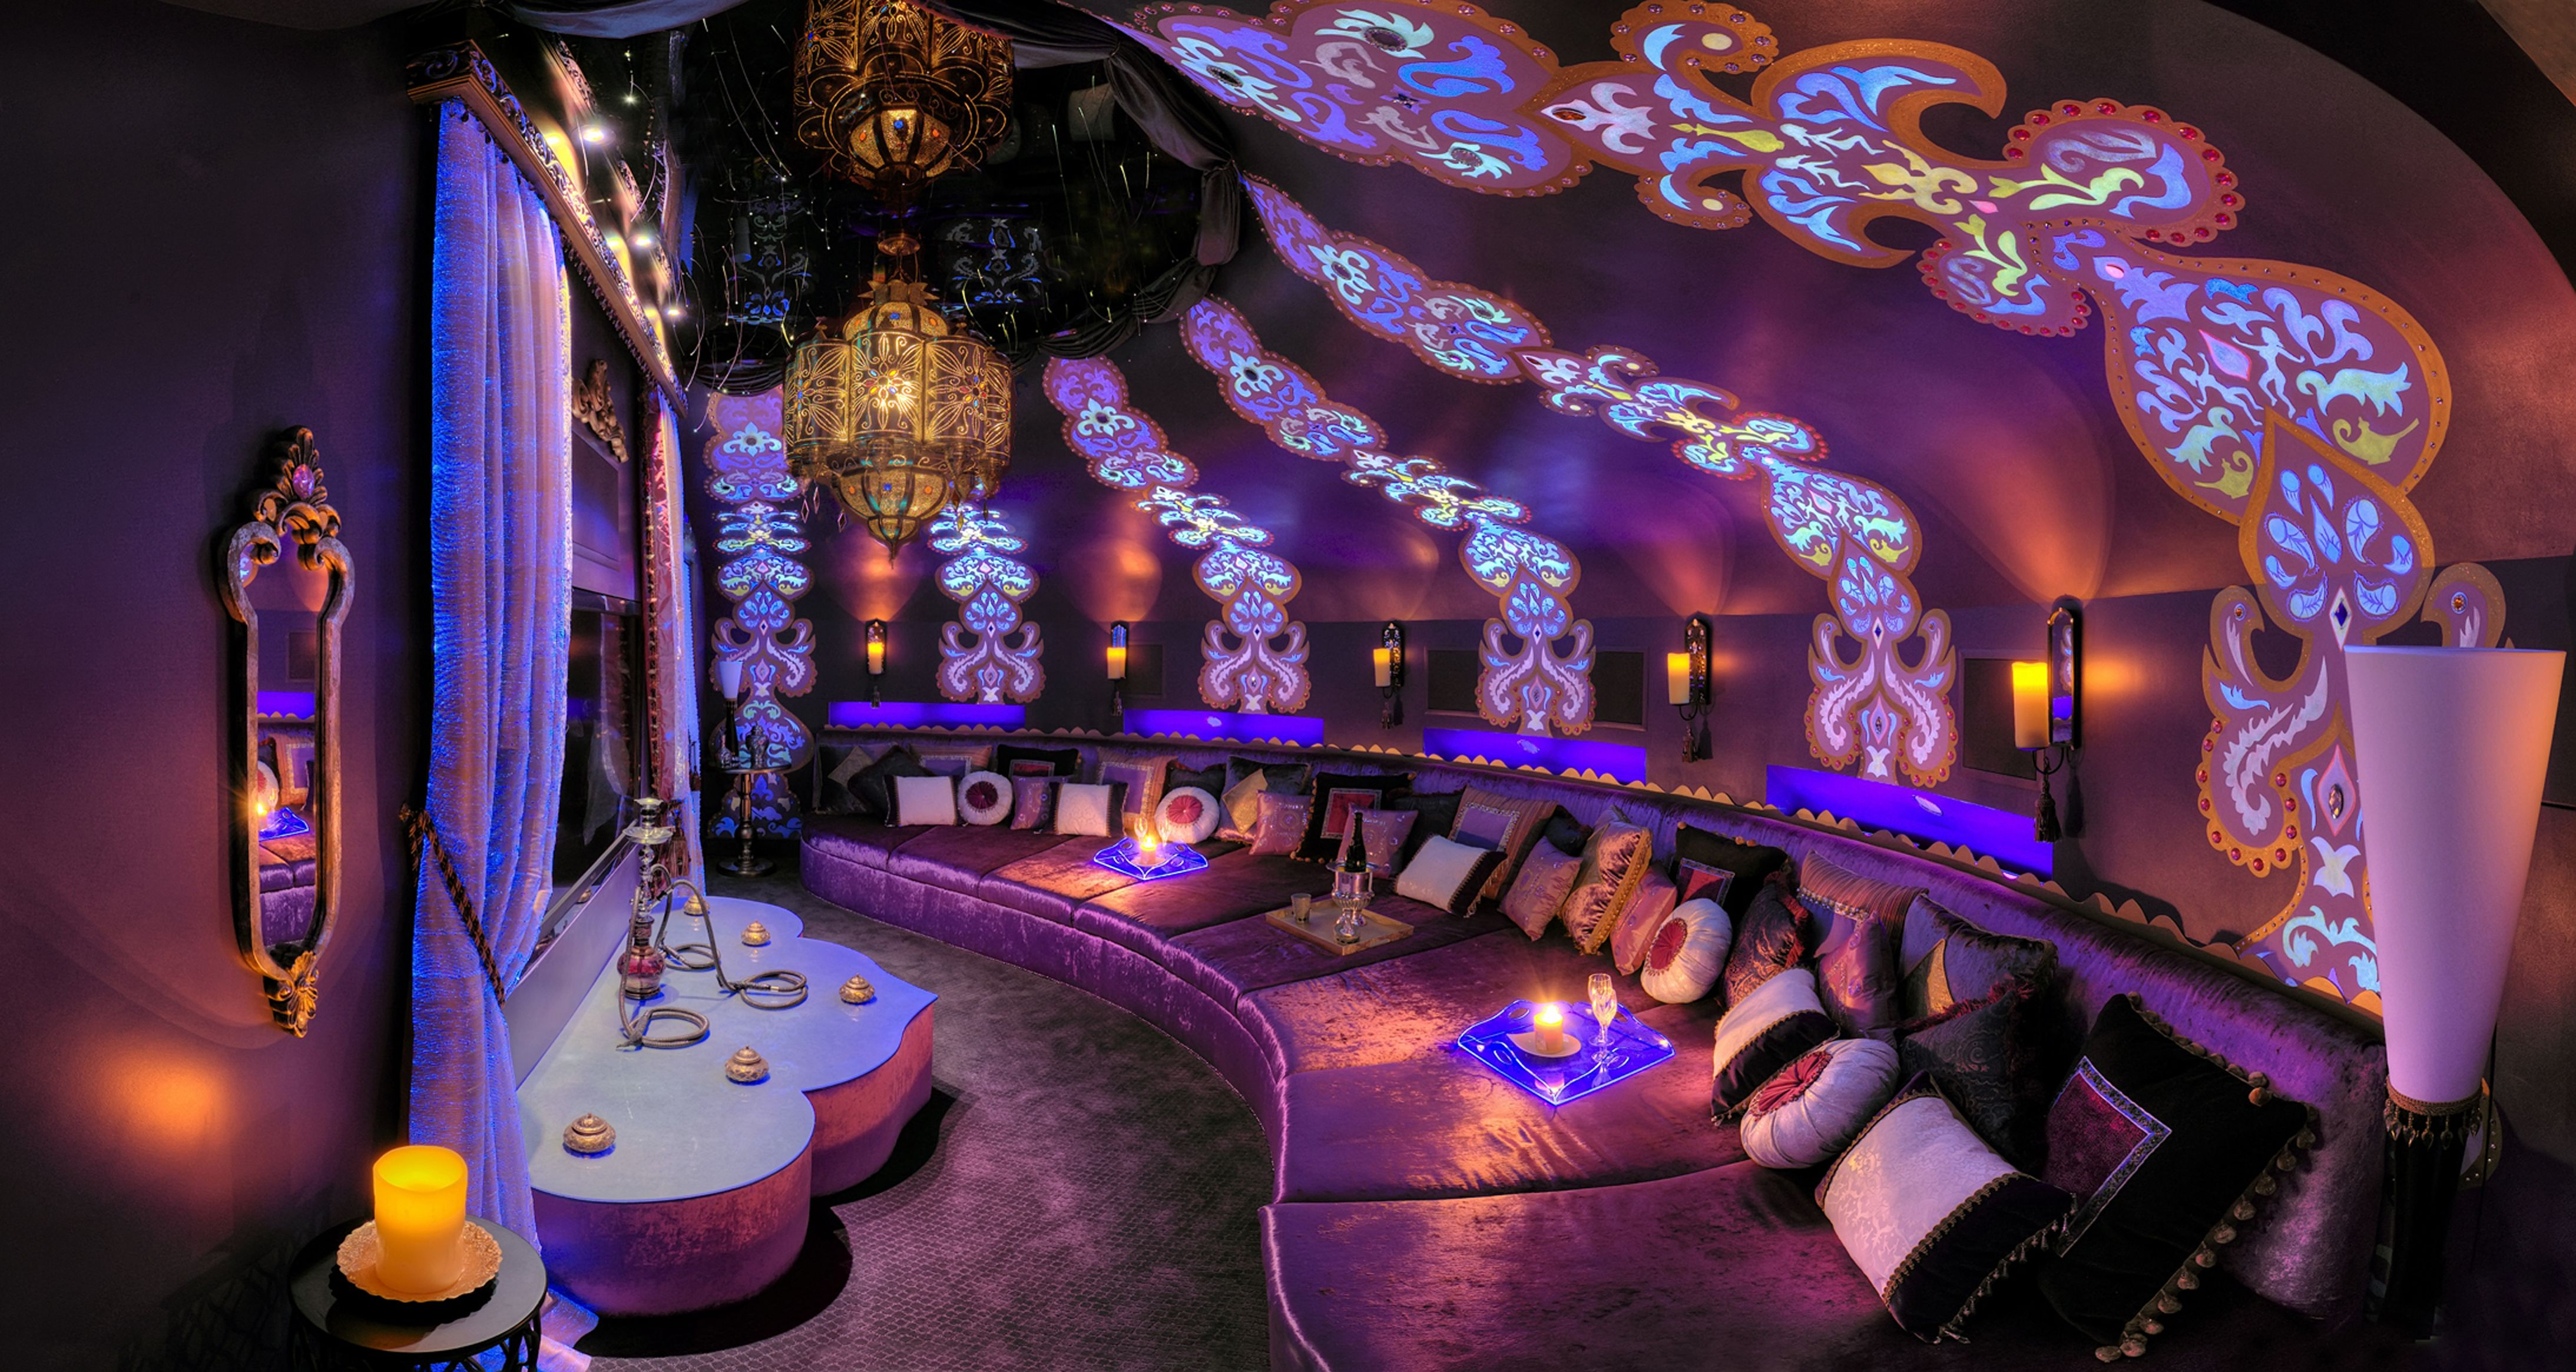 The Jeannie Room This Room Was Built To Look Like The Inside Of The I Dream Of Jeannie Bottle Pretty Clo Lounge Interiors Media Room Design Hookah Lounge